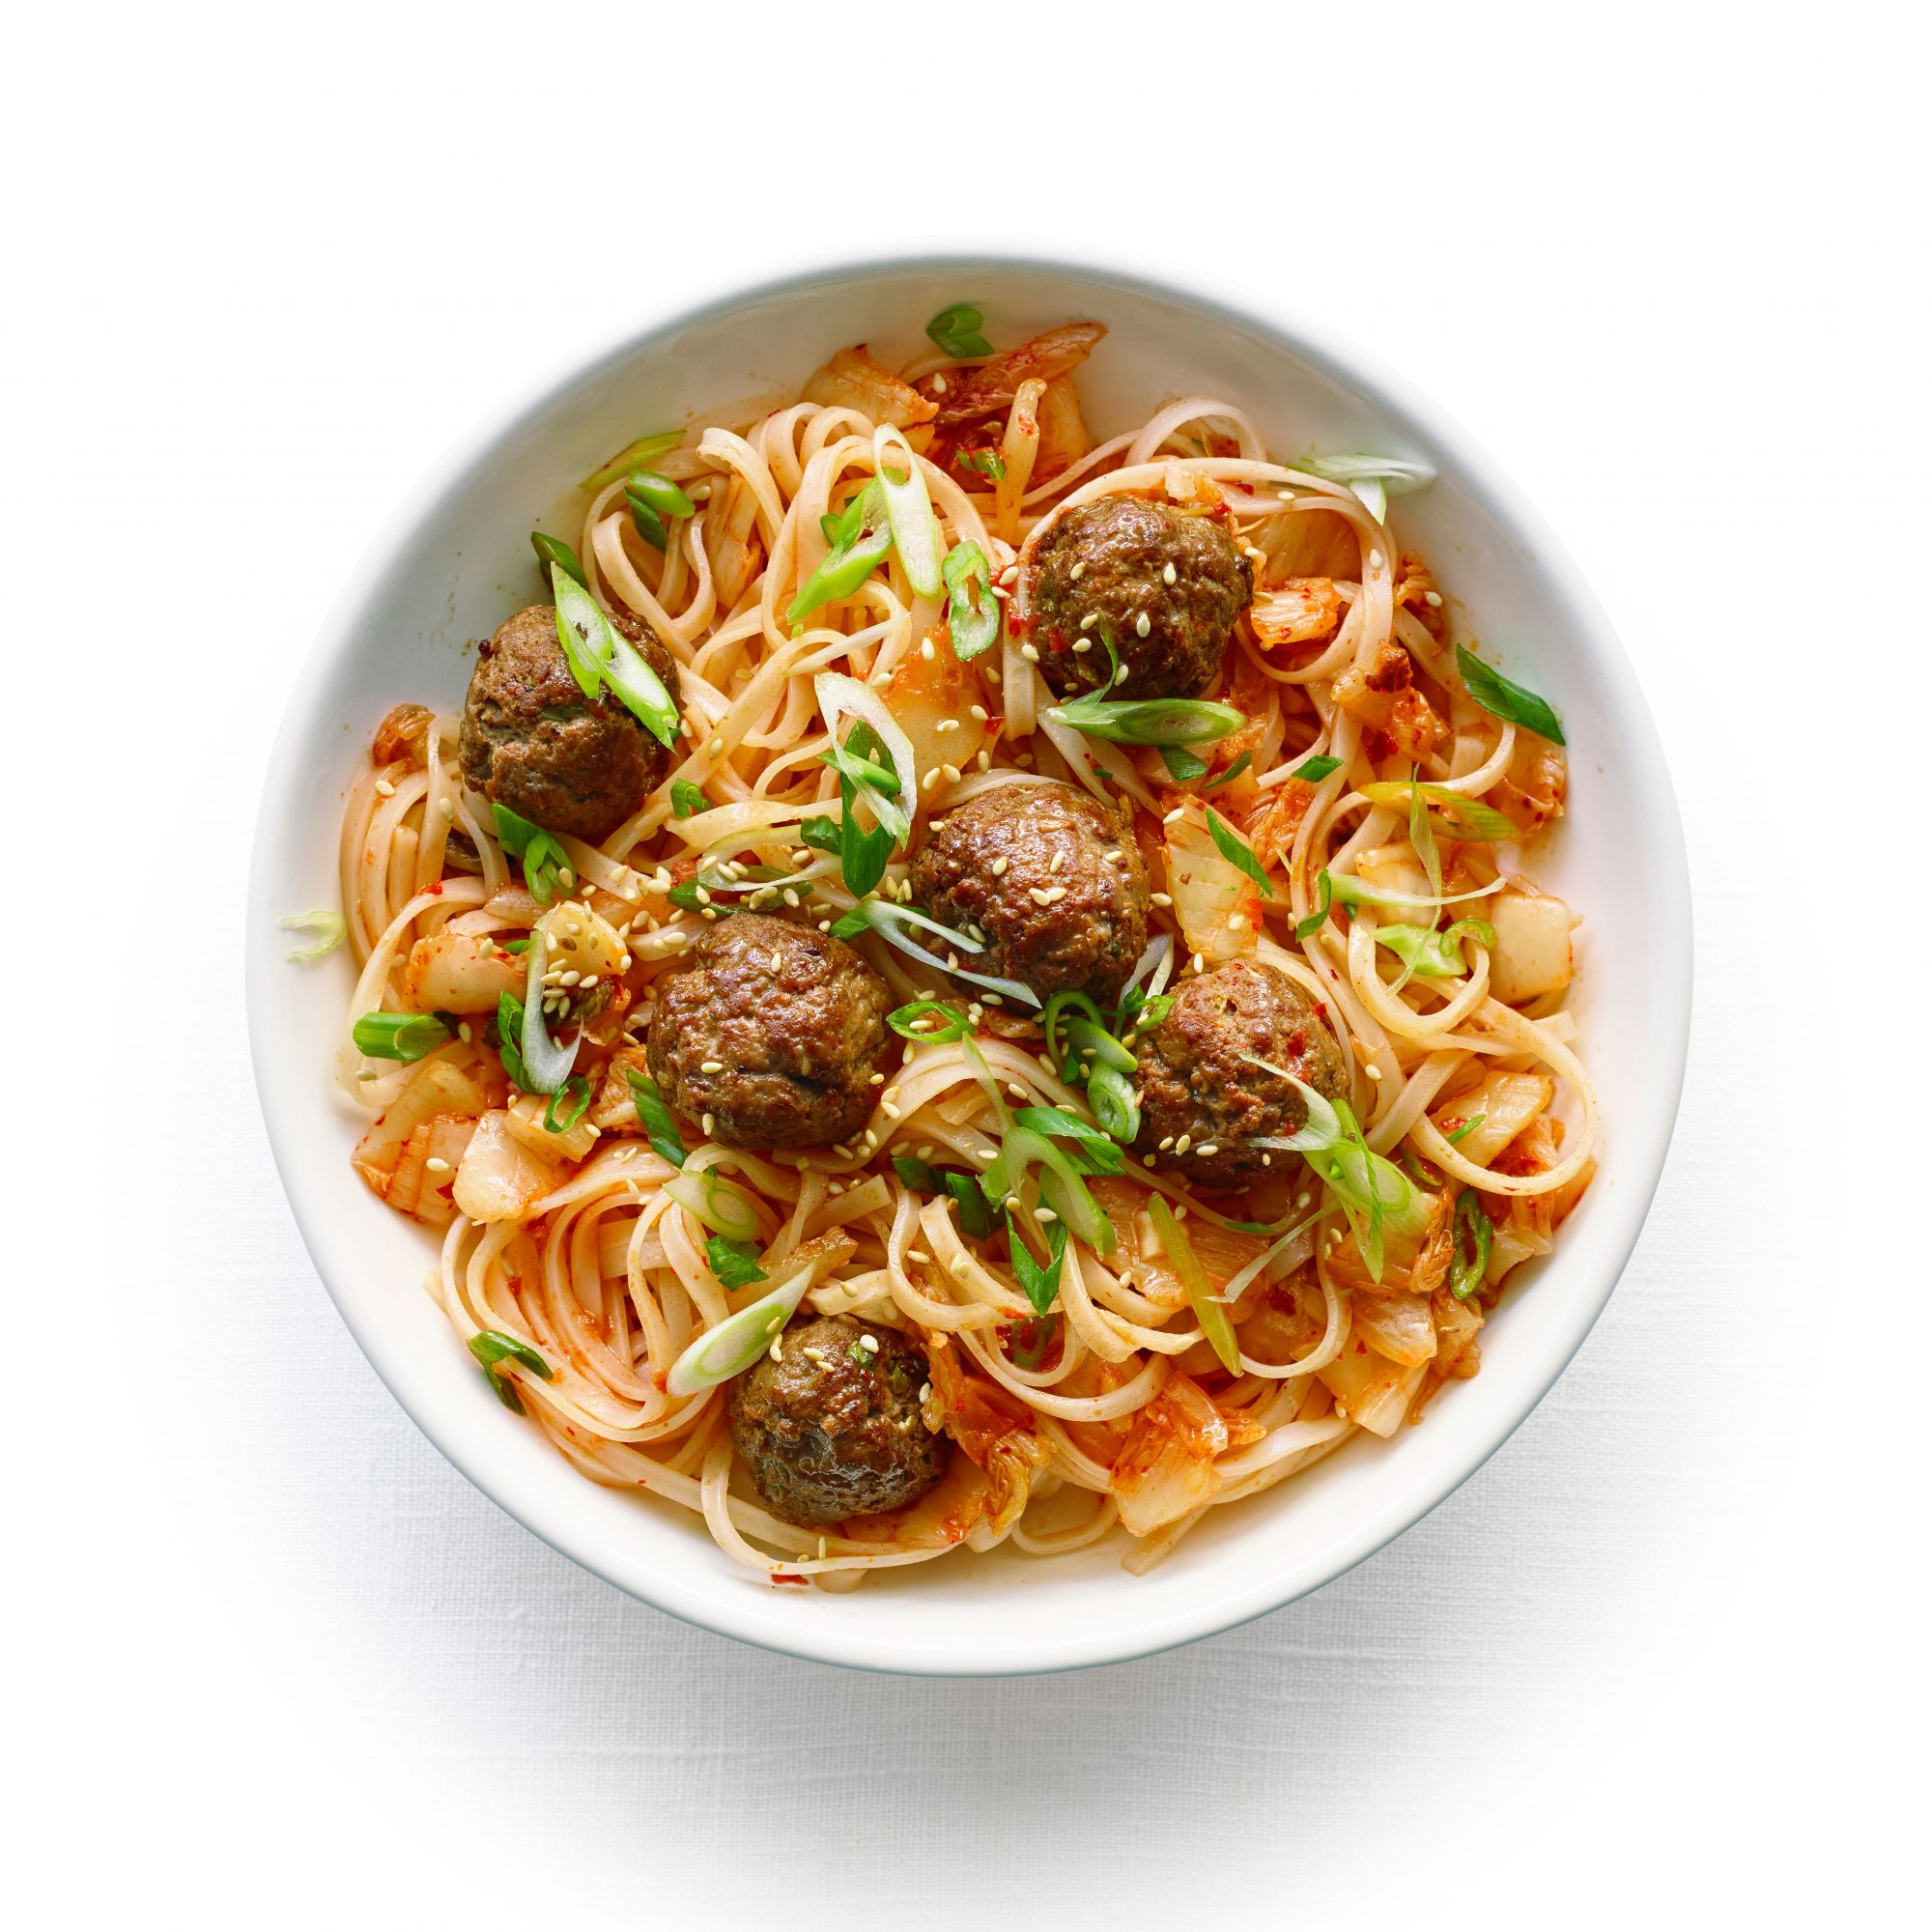 Korean Spaghetti and Meatballs